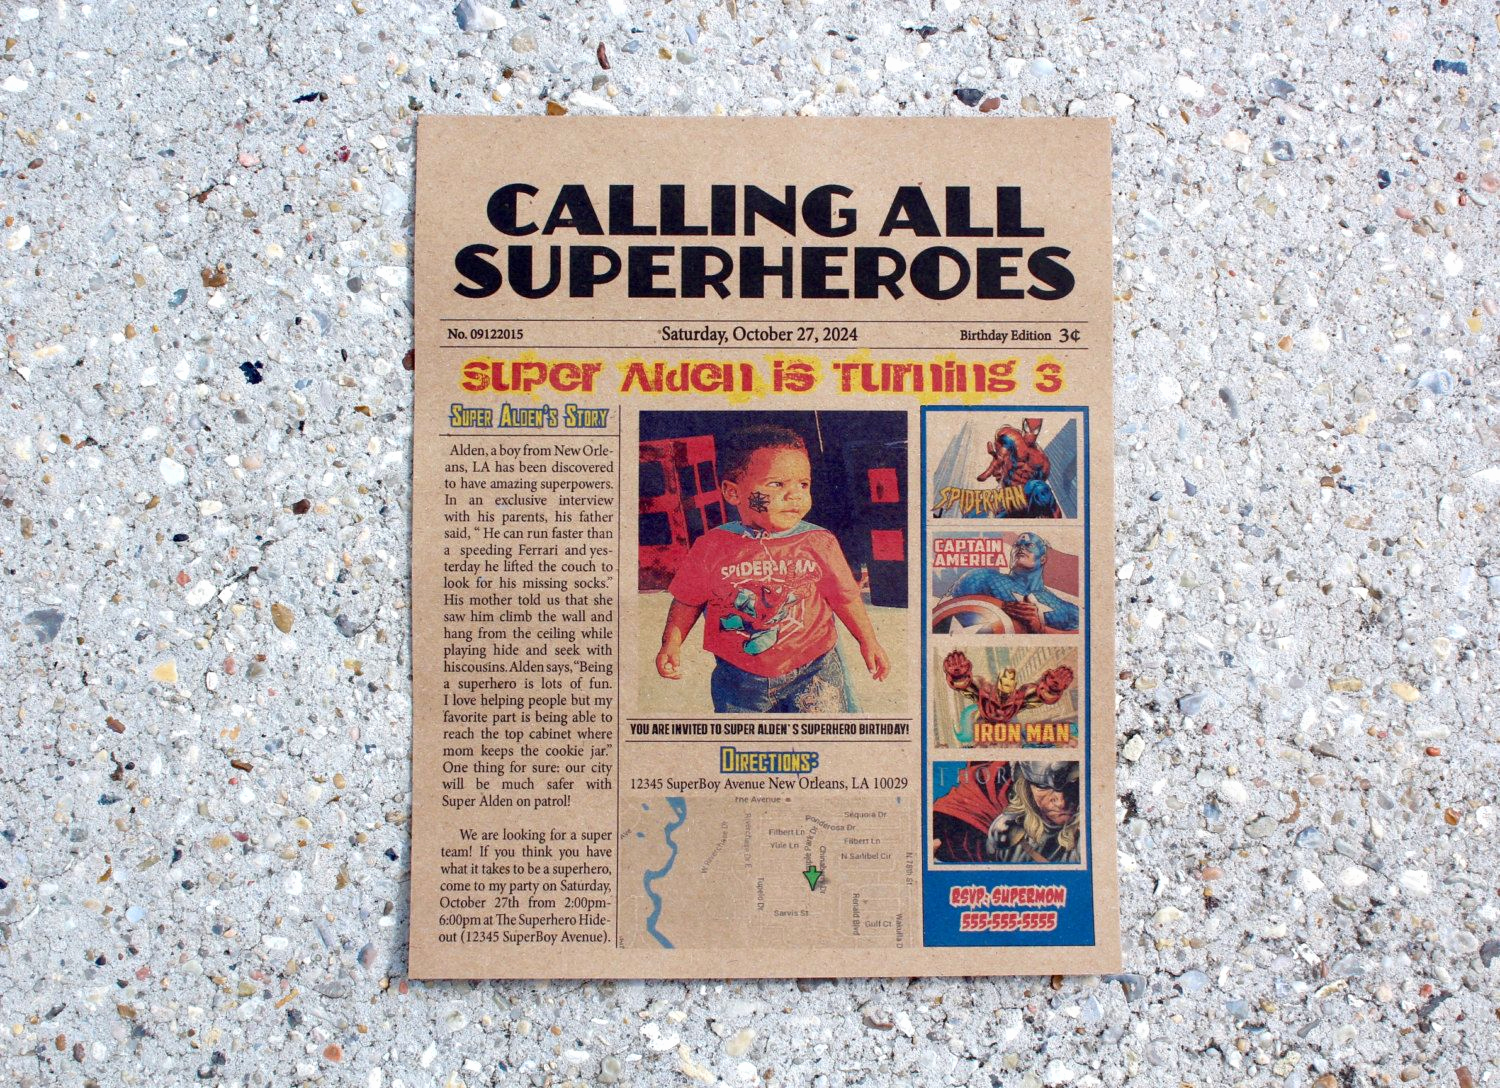 Calling All Superheroes Invitation Lovely Calling All Superheroes Newspaper Invitation